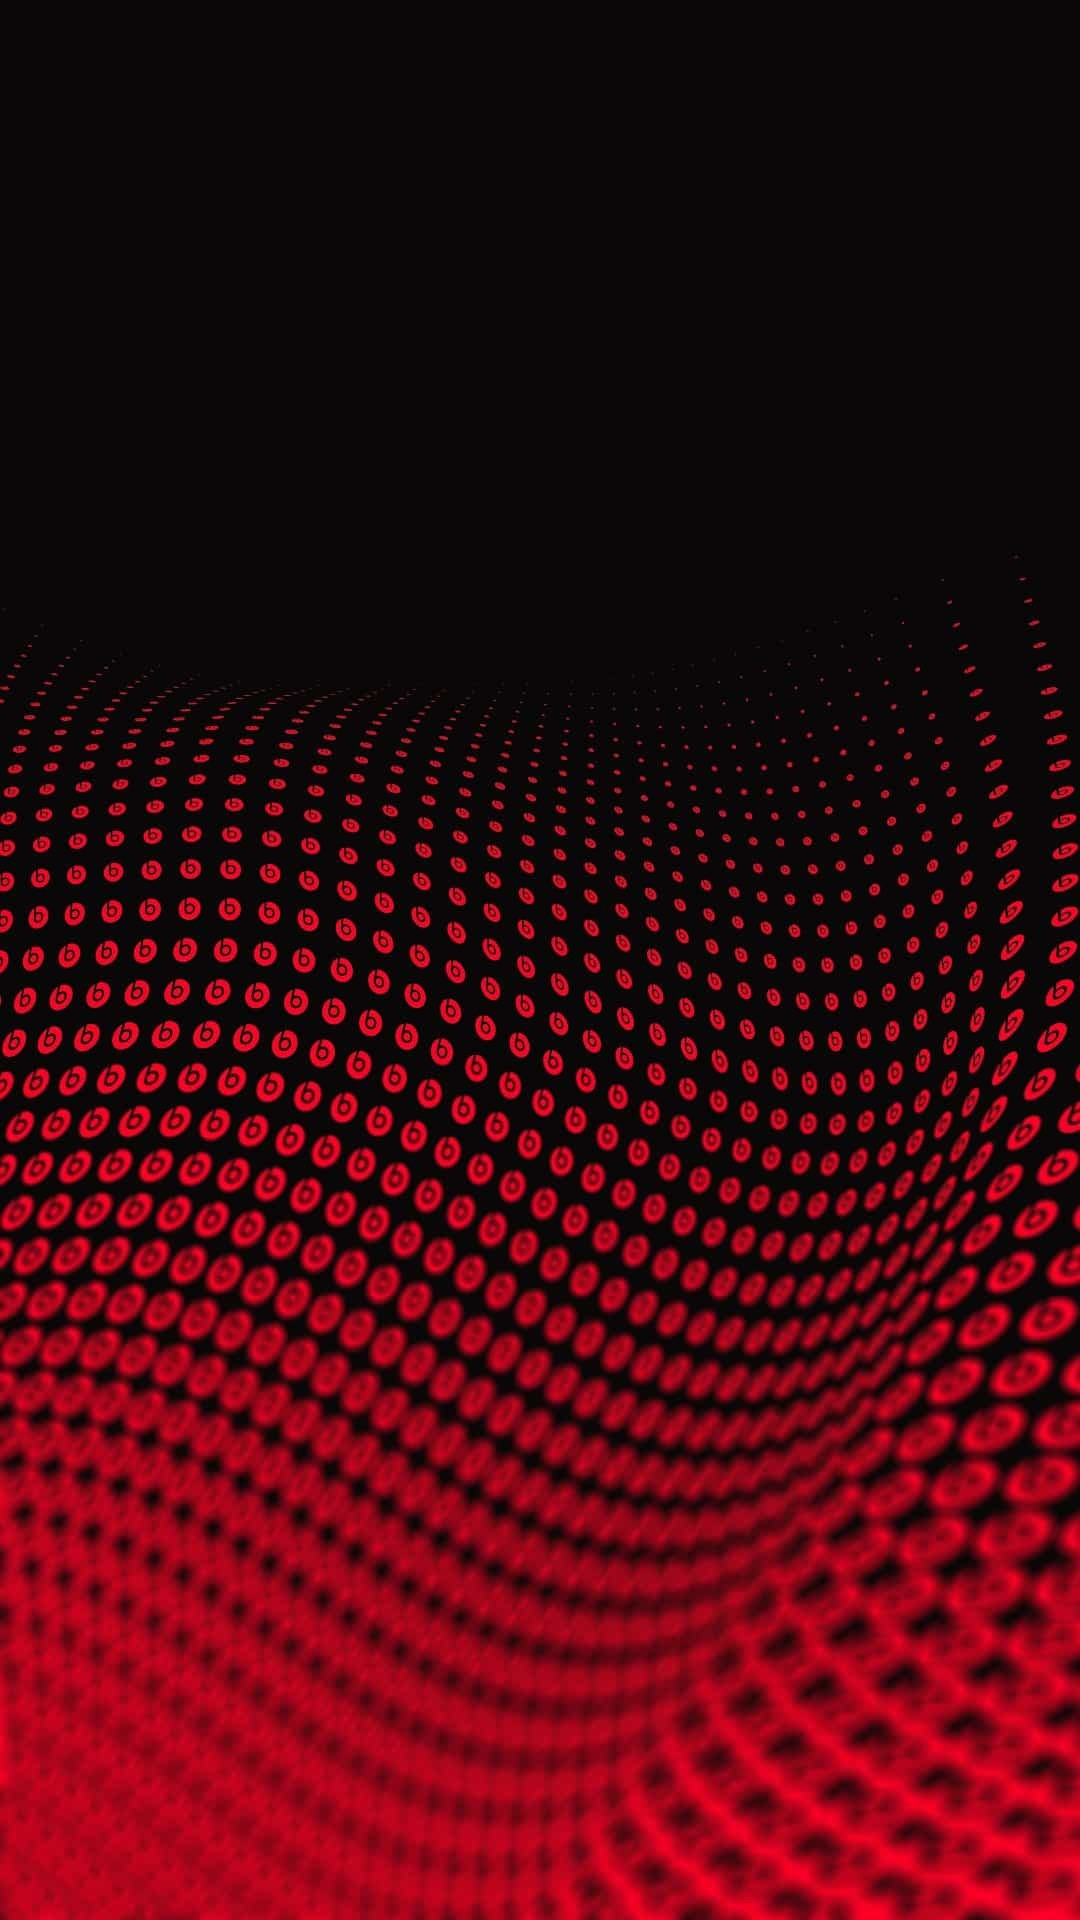 https://wallpaperformobile.org/14368/red-abstract-wallpaper.